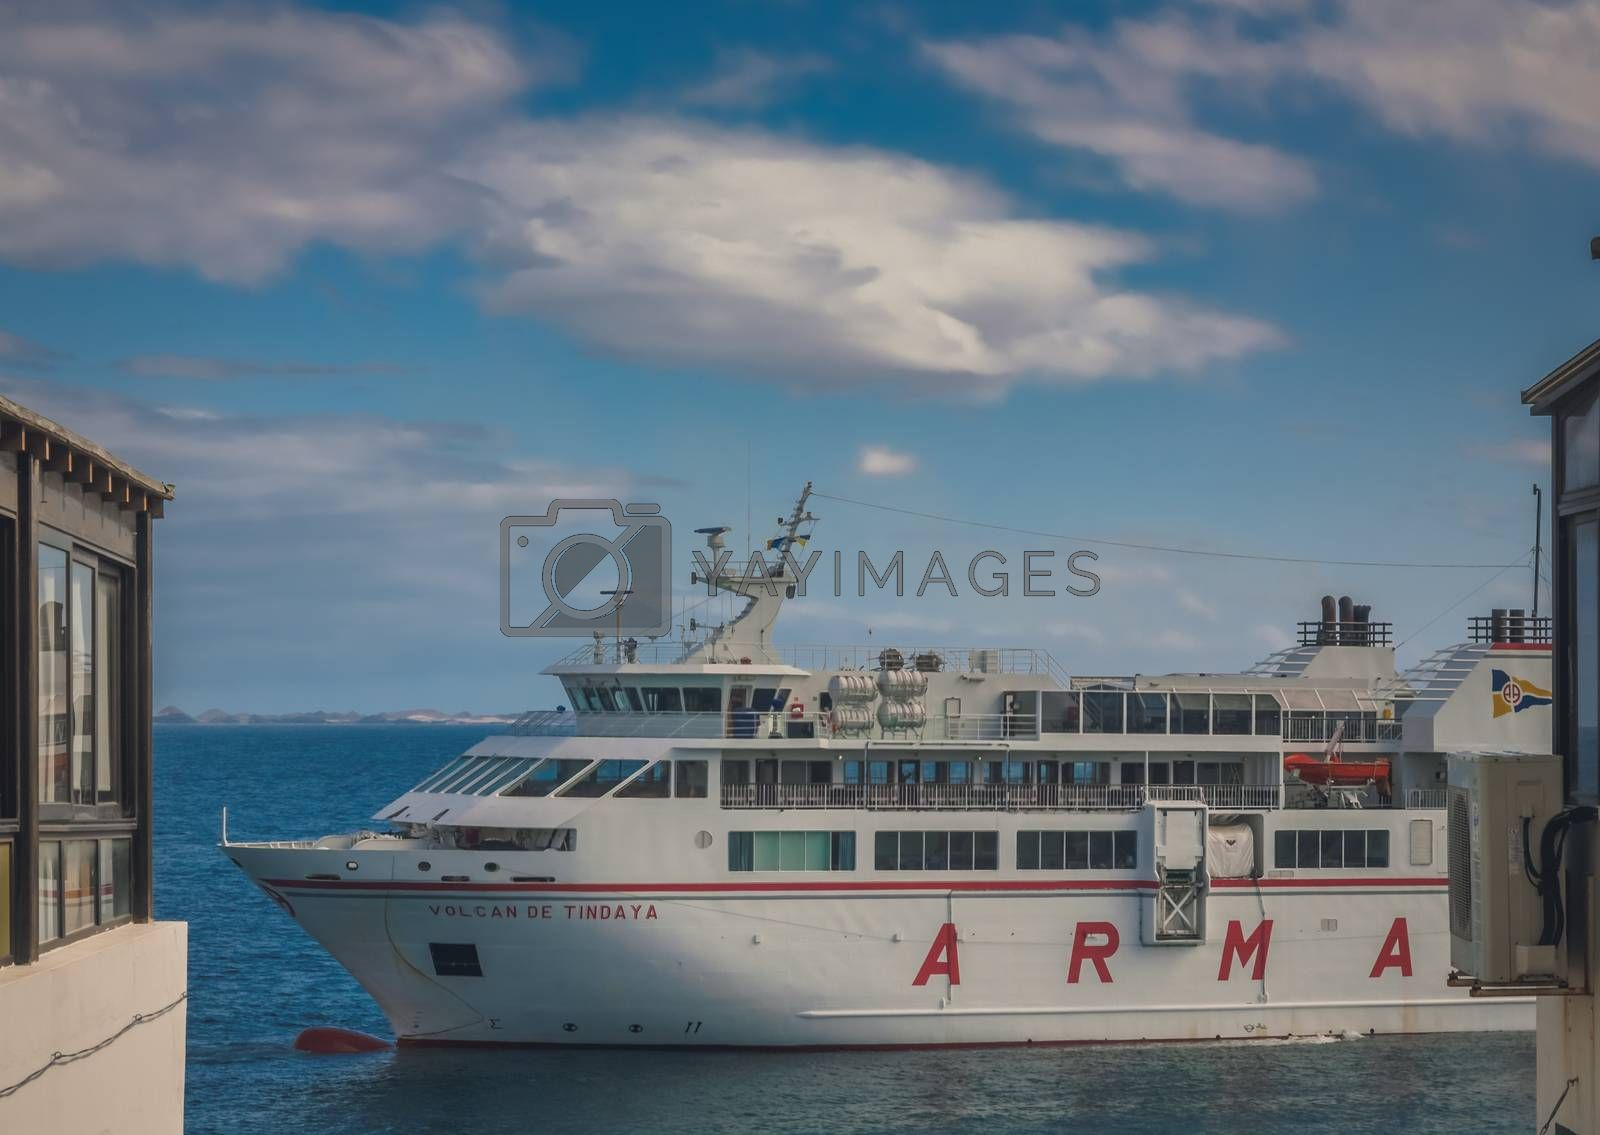 Large passenger ferry Armas docked in a harbour in Playa Blanca, Lanzarote, Canary Islands, Spain. Picture taken 19 April 2016